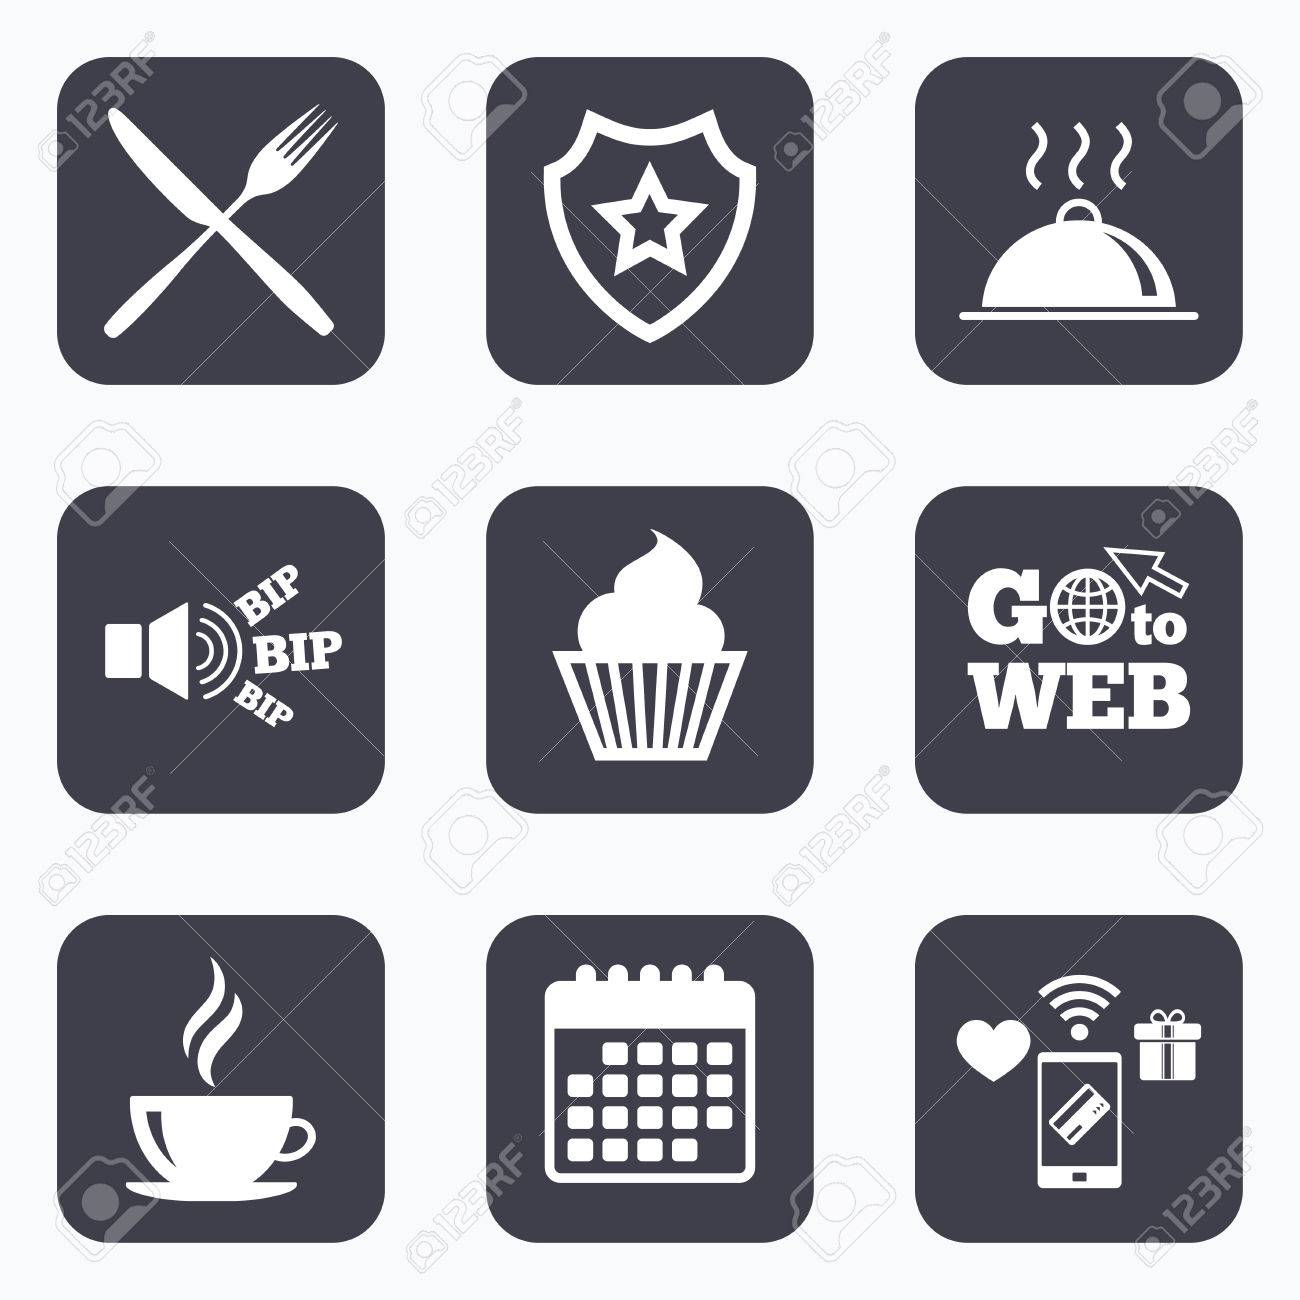 Mobile Payments Wifi And Calendar Icons Food And Drink Icons Muffin Cupcake Symbol Fork And Knife Sign Hot Coffee Cup Food Platter Serving Go